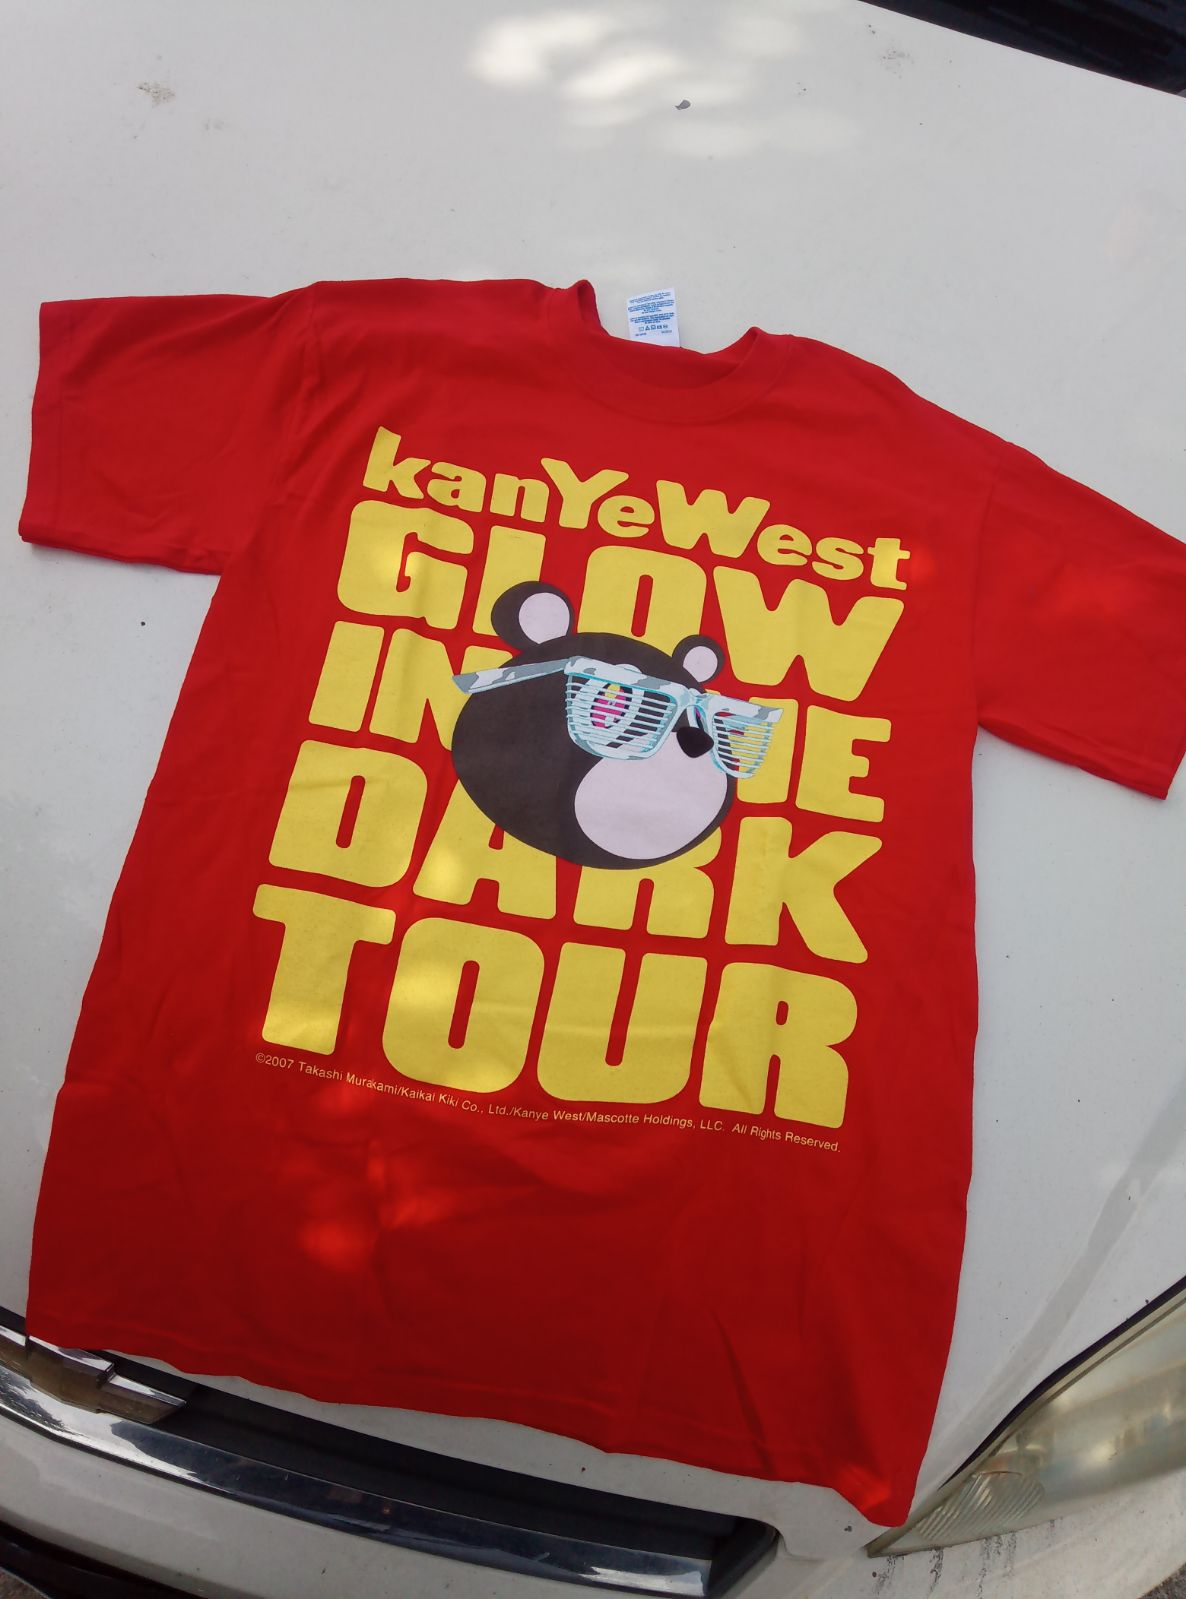 Kanye West glow in the dark tour t-shirt